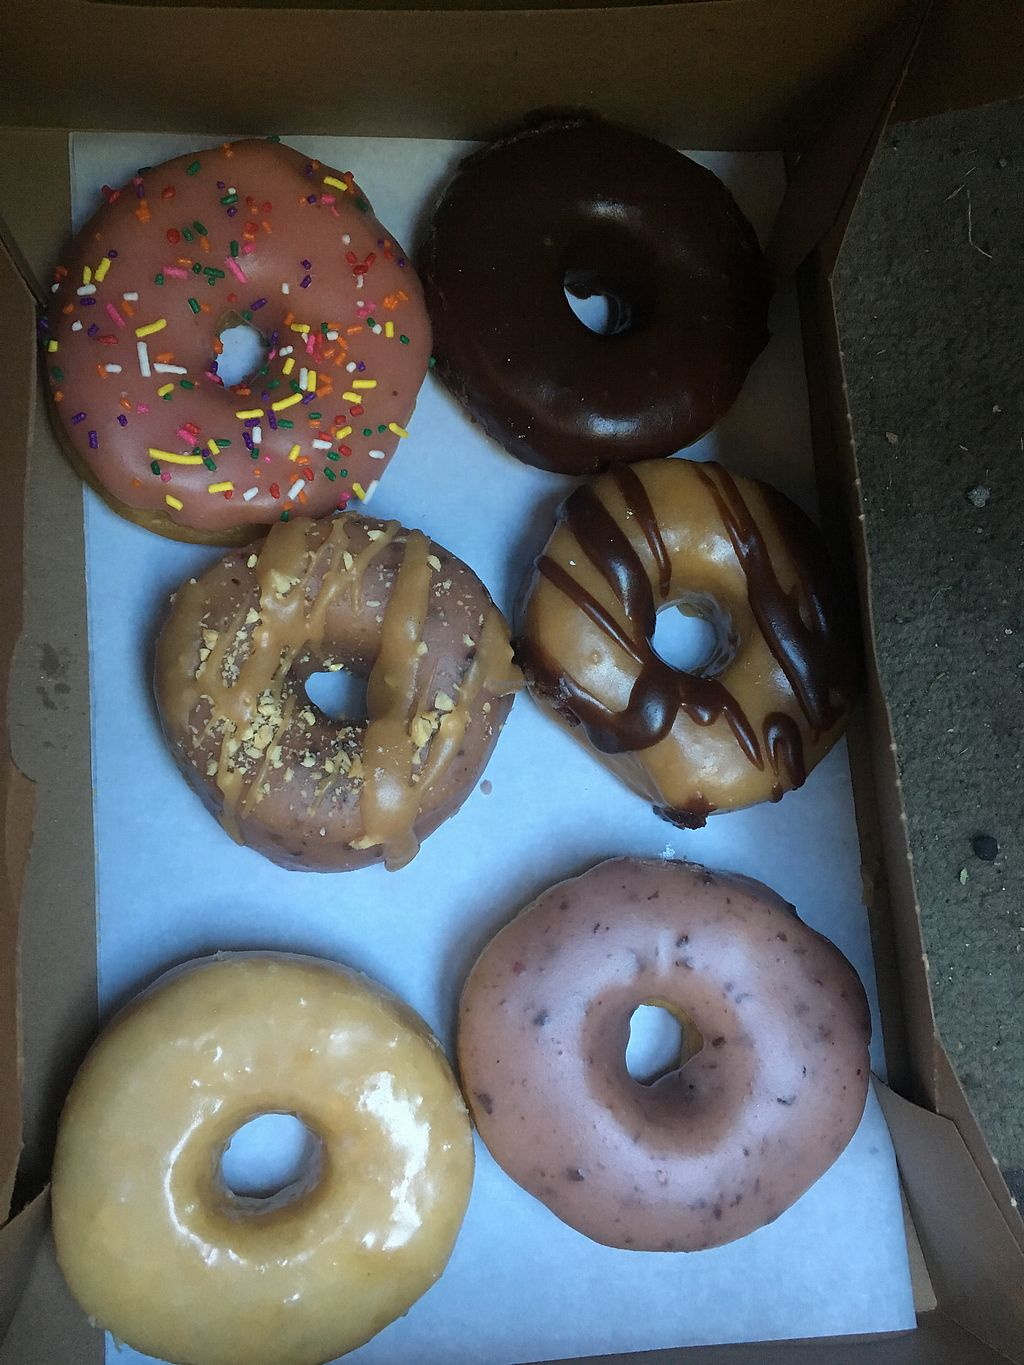 "Photo of Dun-Well Doughnuts  by <a href=""/members/profile/770veg"">770veg</a> <br/>can't pick just one! <br/> October 4, 2017  - <a href='/contact/abuse/image/30135/311661'>Report</a>"